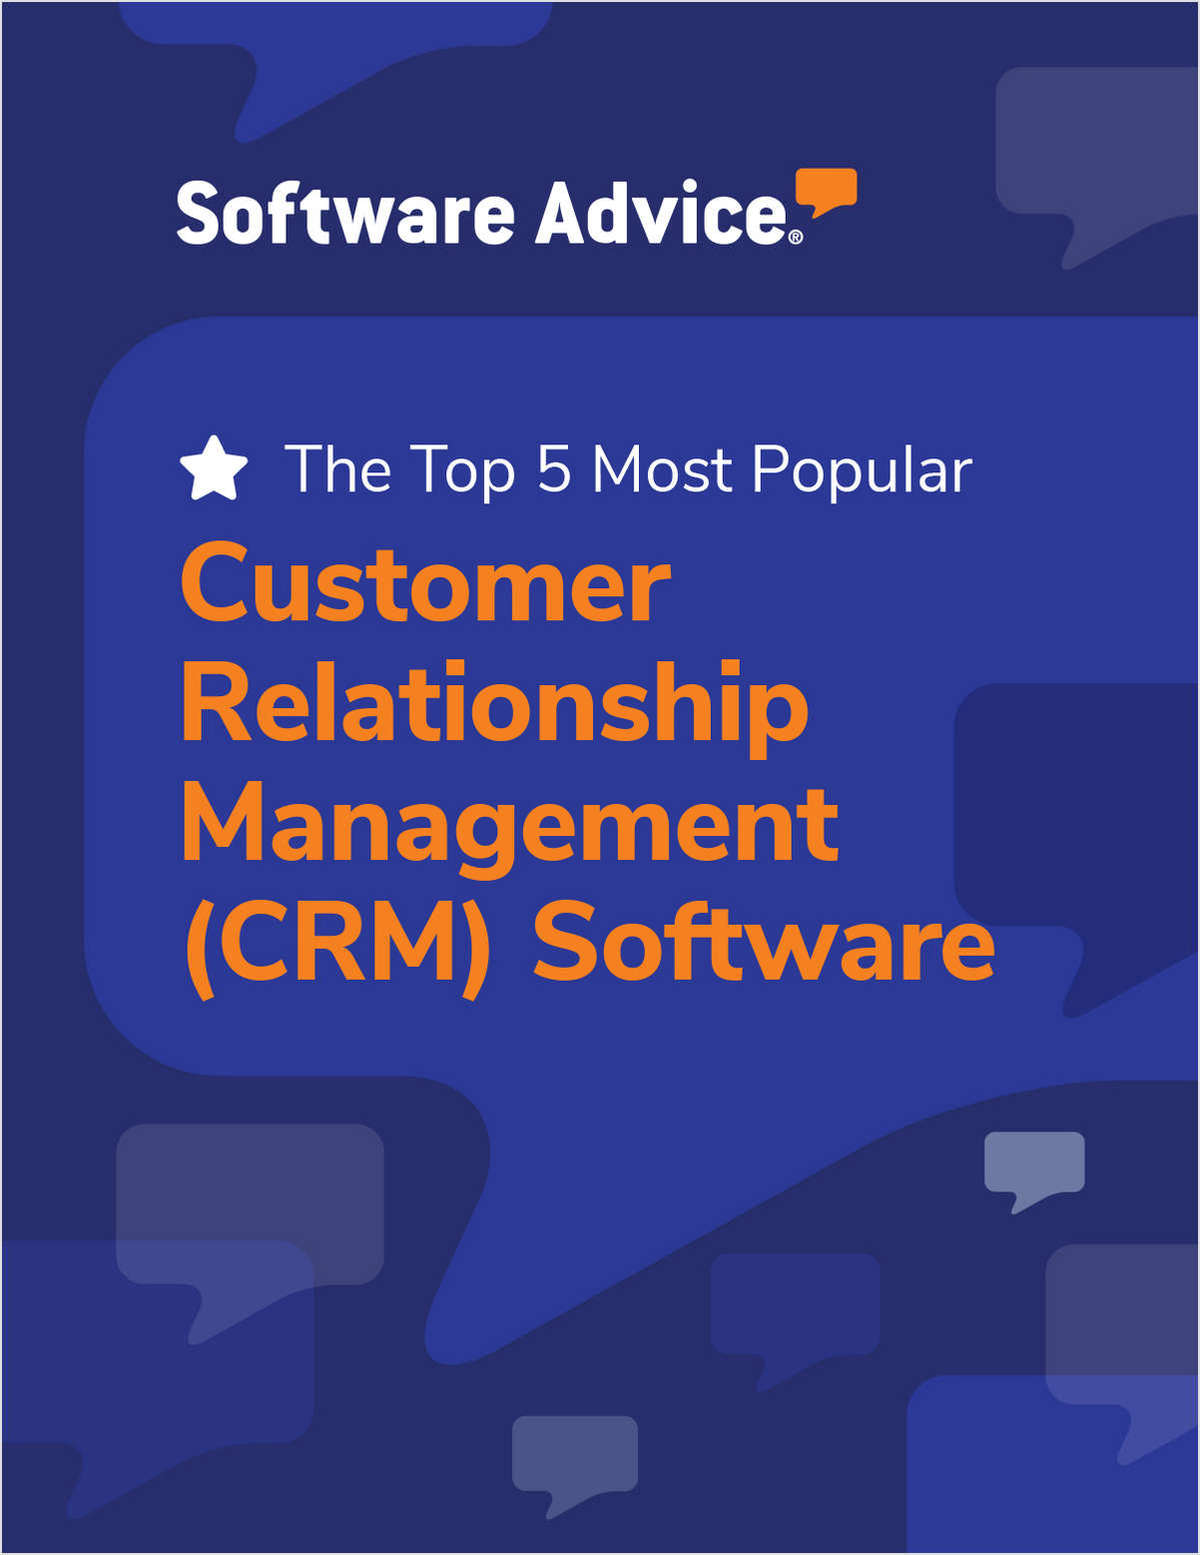 Software Advice's Top 5: Most Popular CRM Software